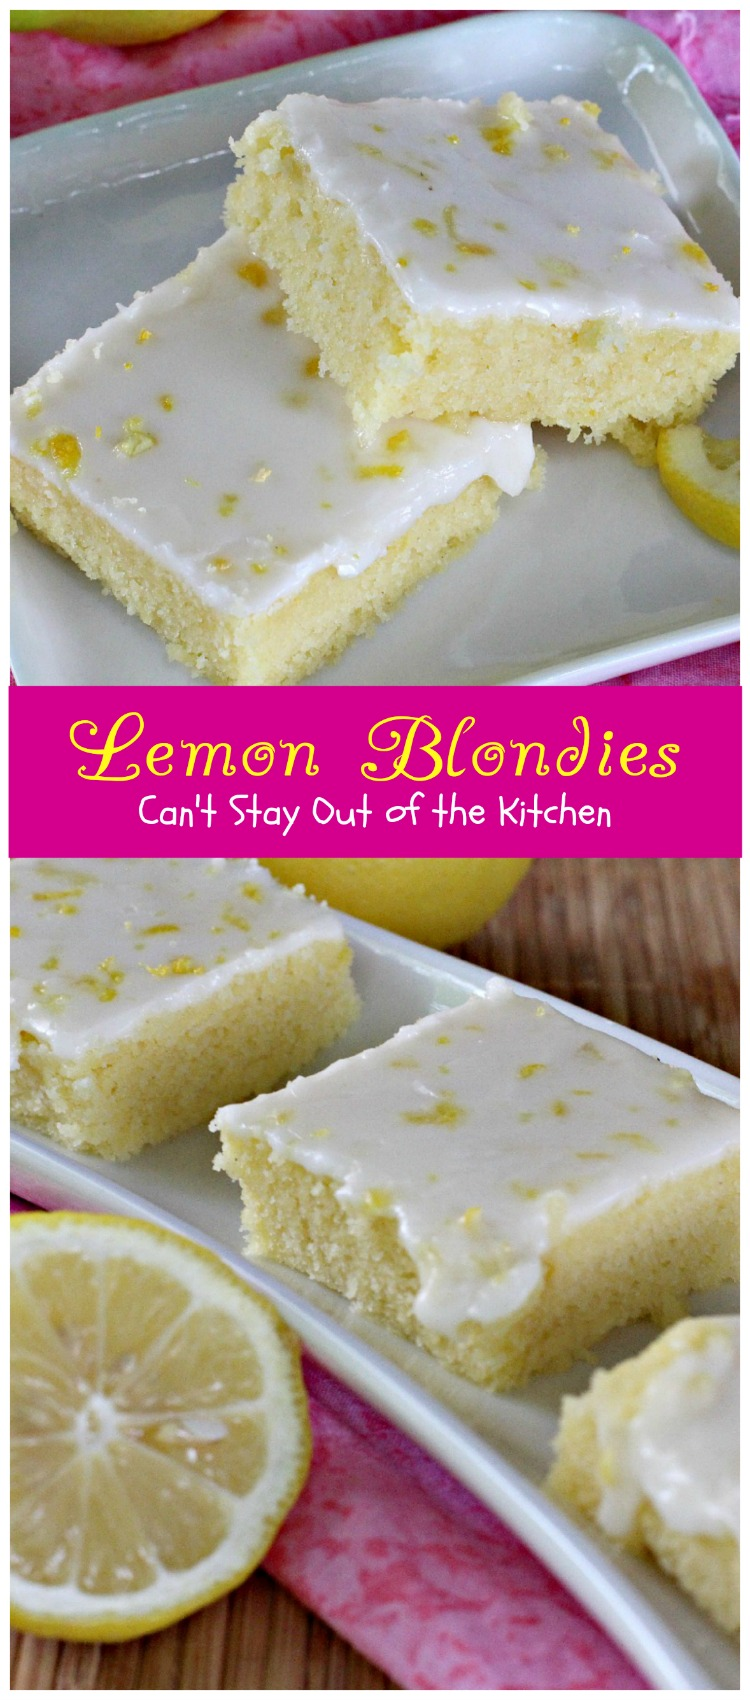 Lemon Blondies   Can't Stay Out of the Kitchen